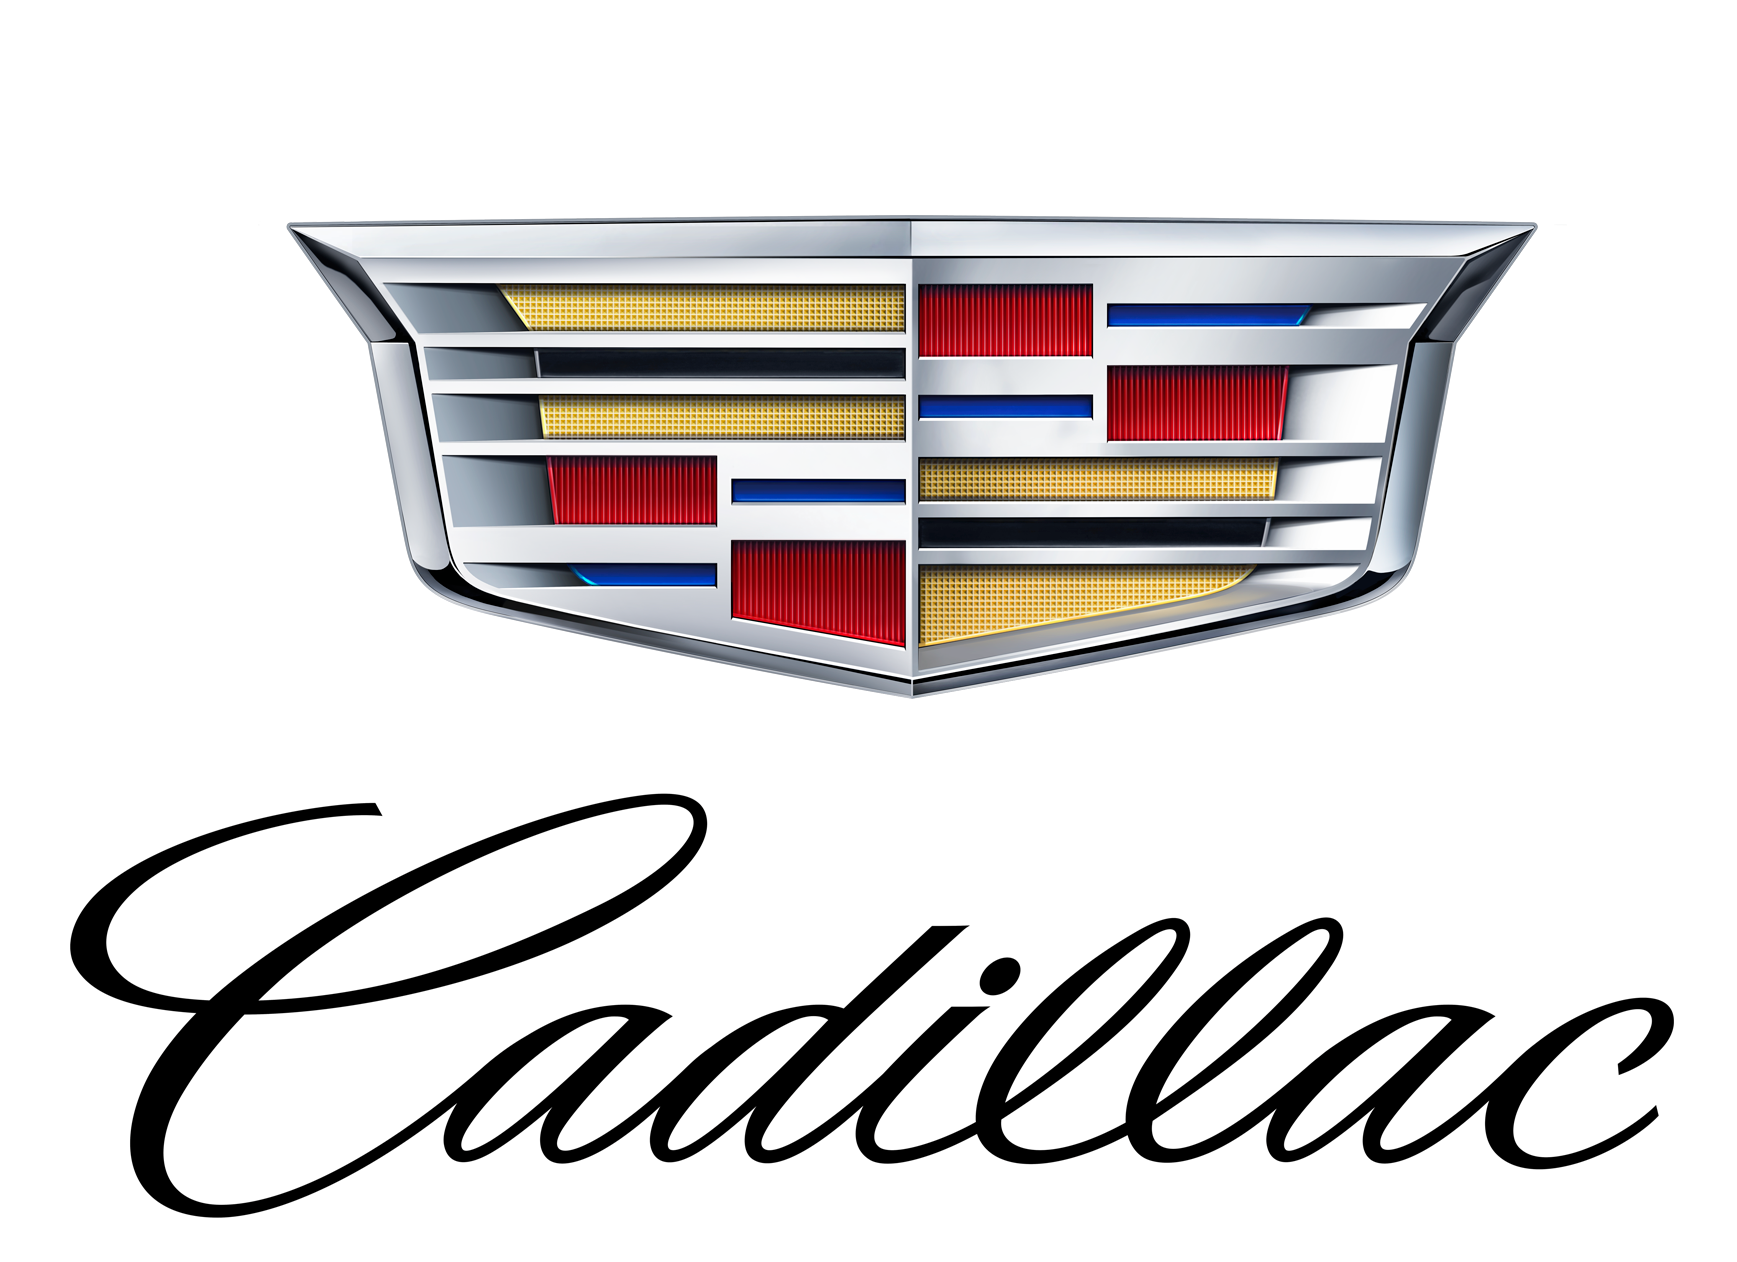 Cadillac logo png. Transparent images all image